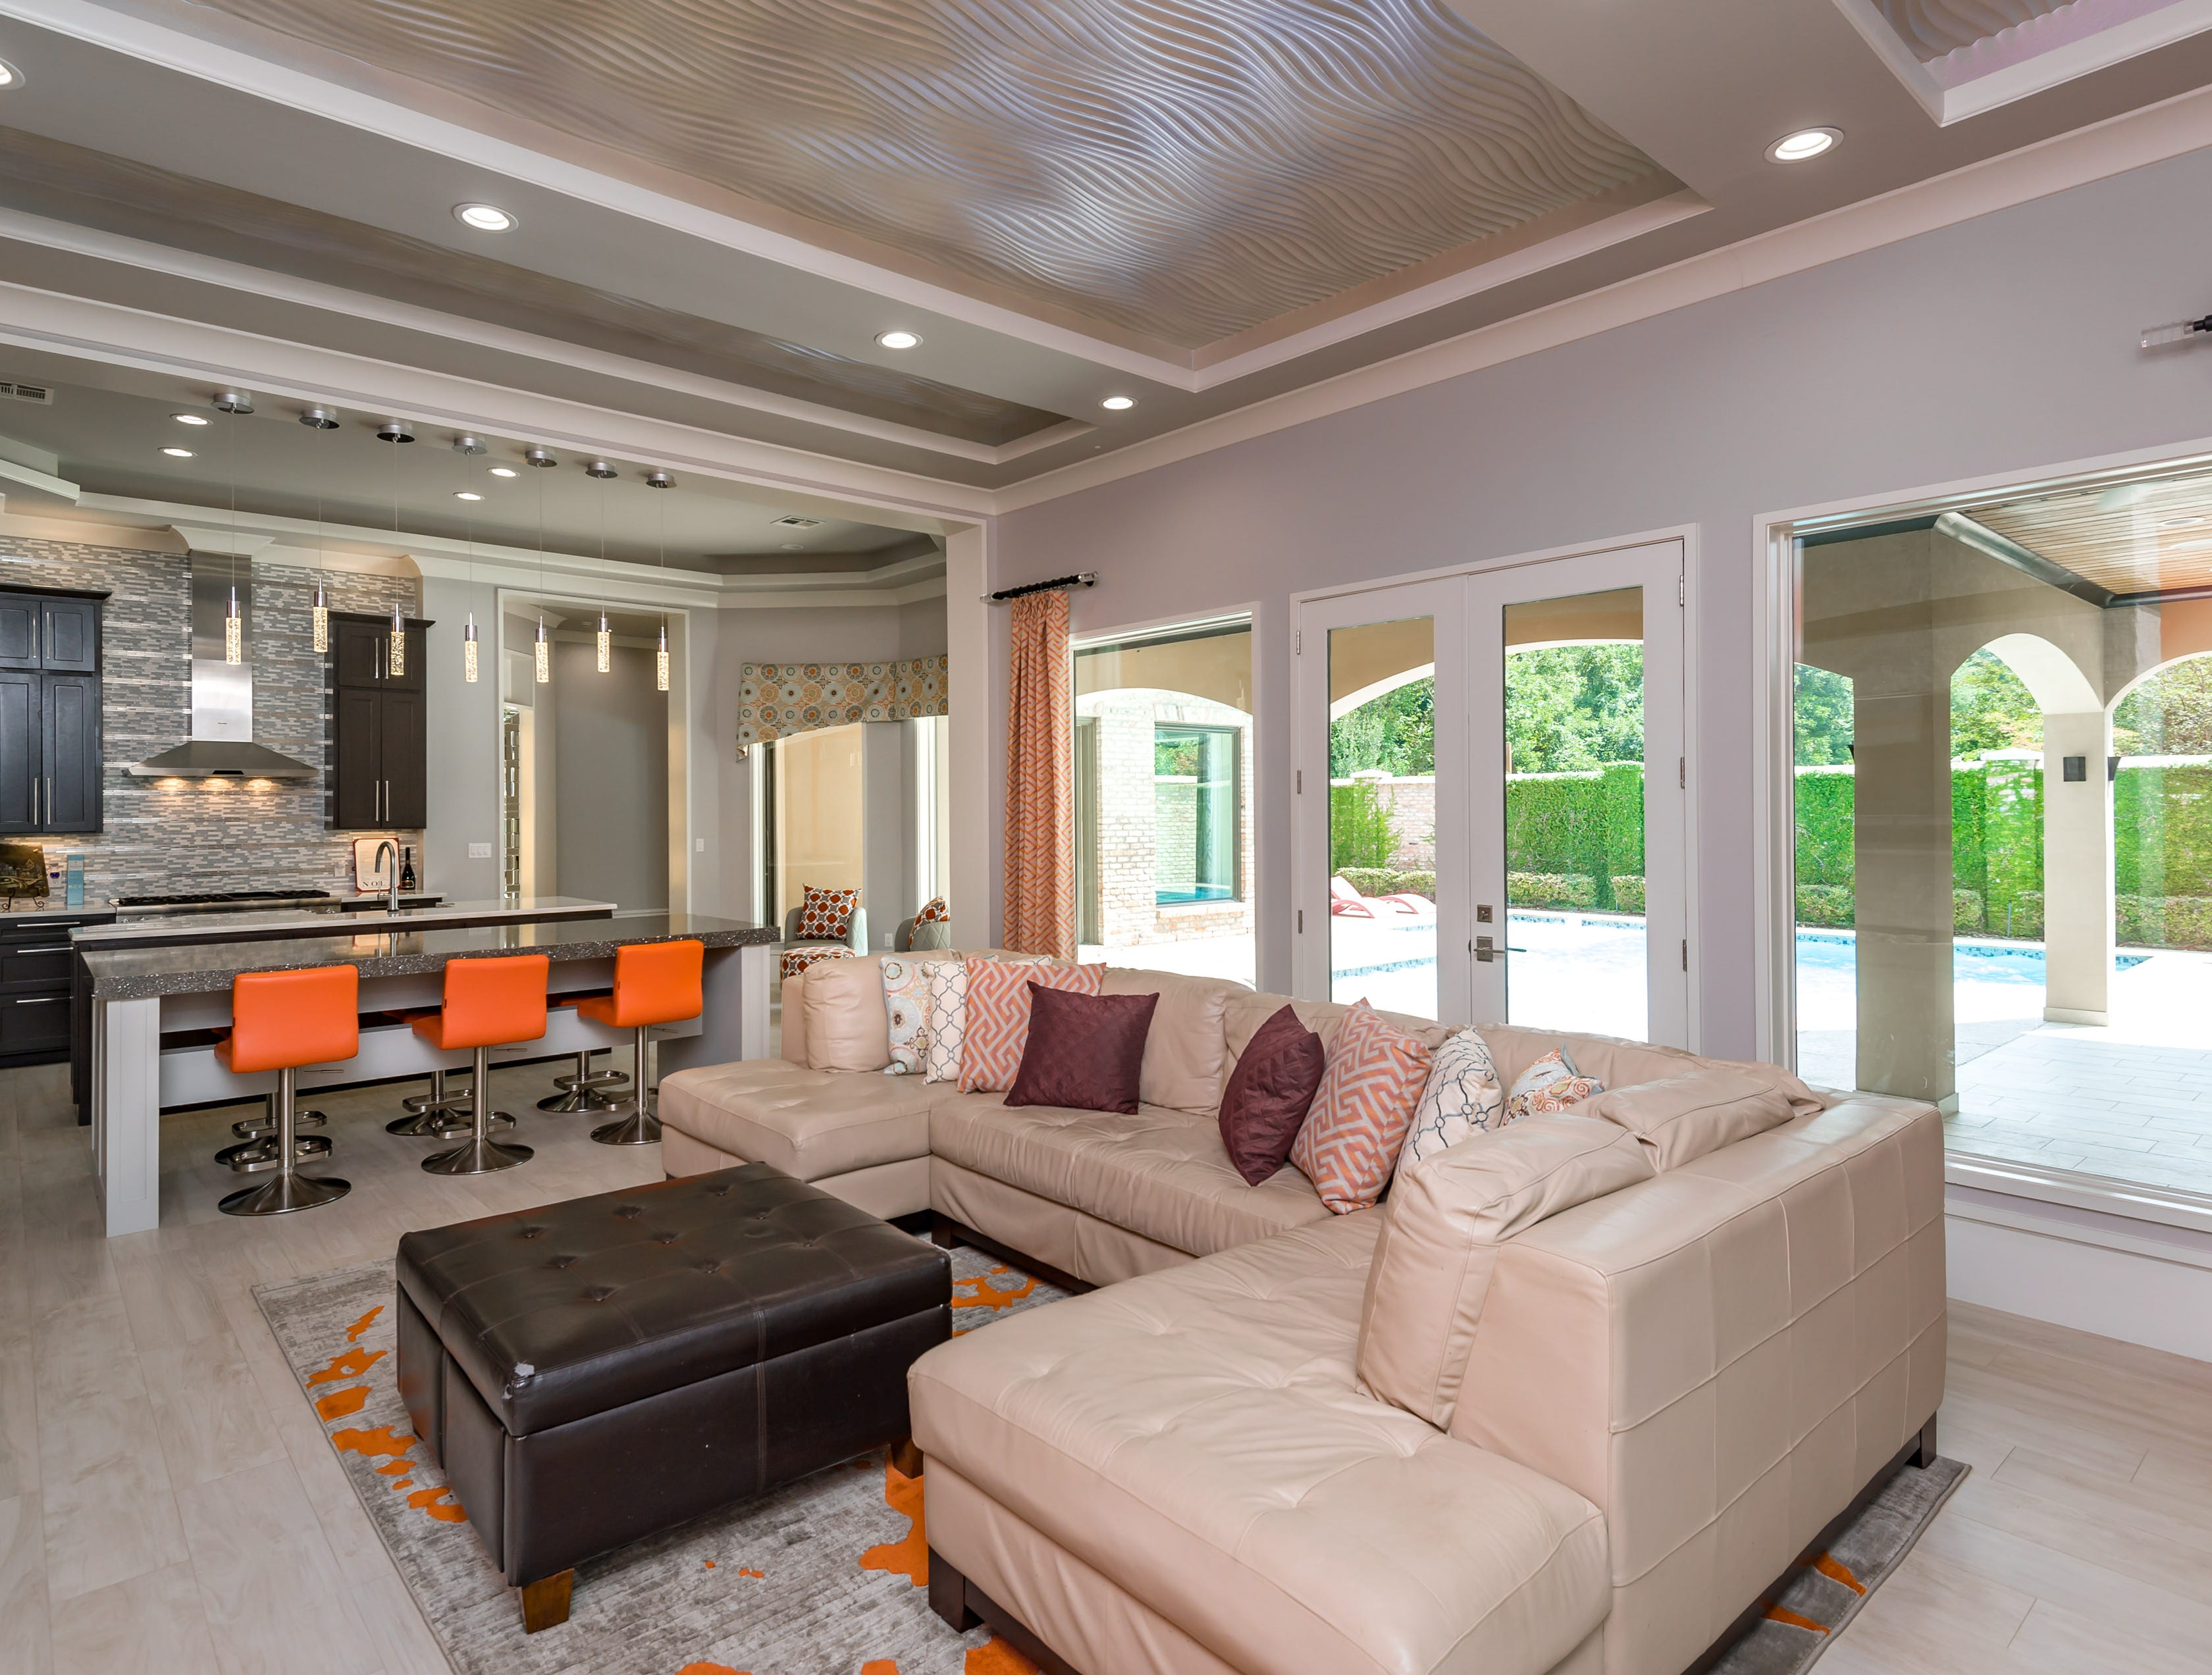 A wall of windows showcases the backyard oasis, and entertaining is made easy with the open concept.